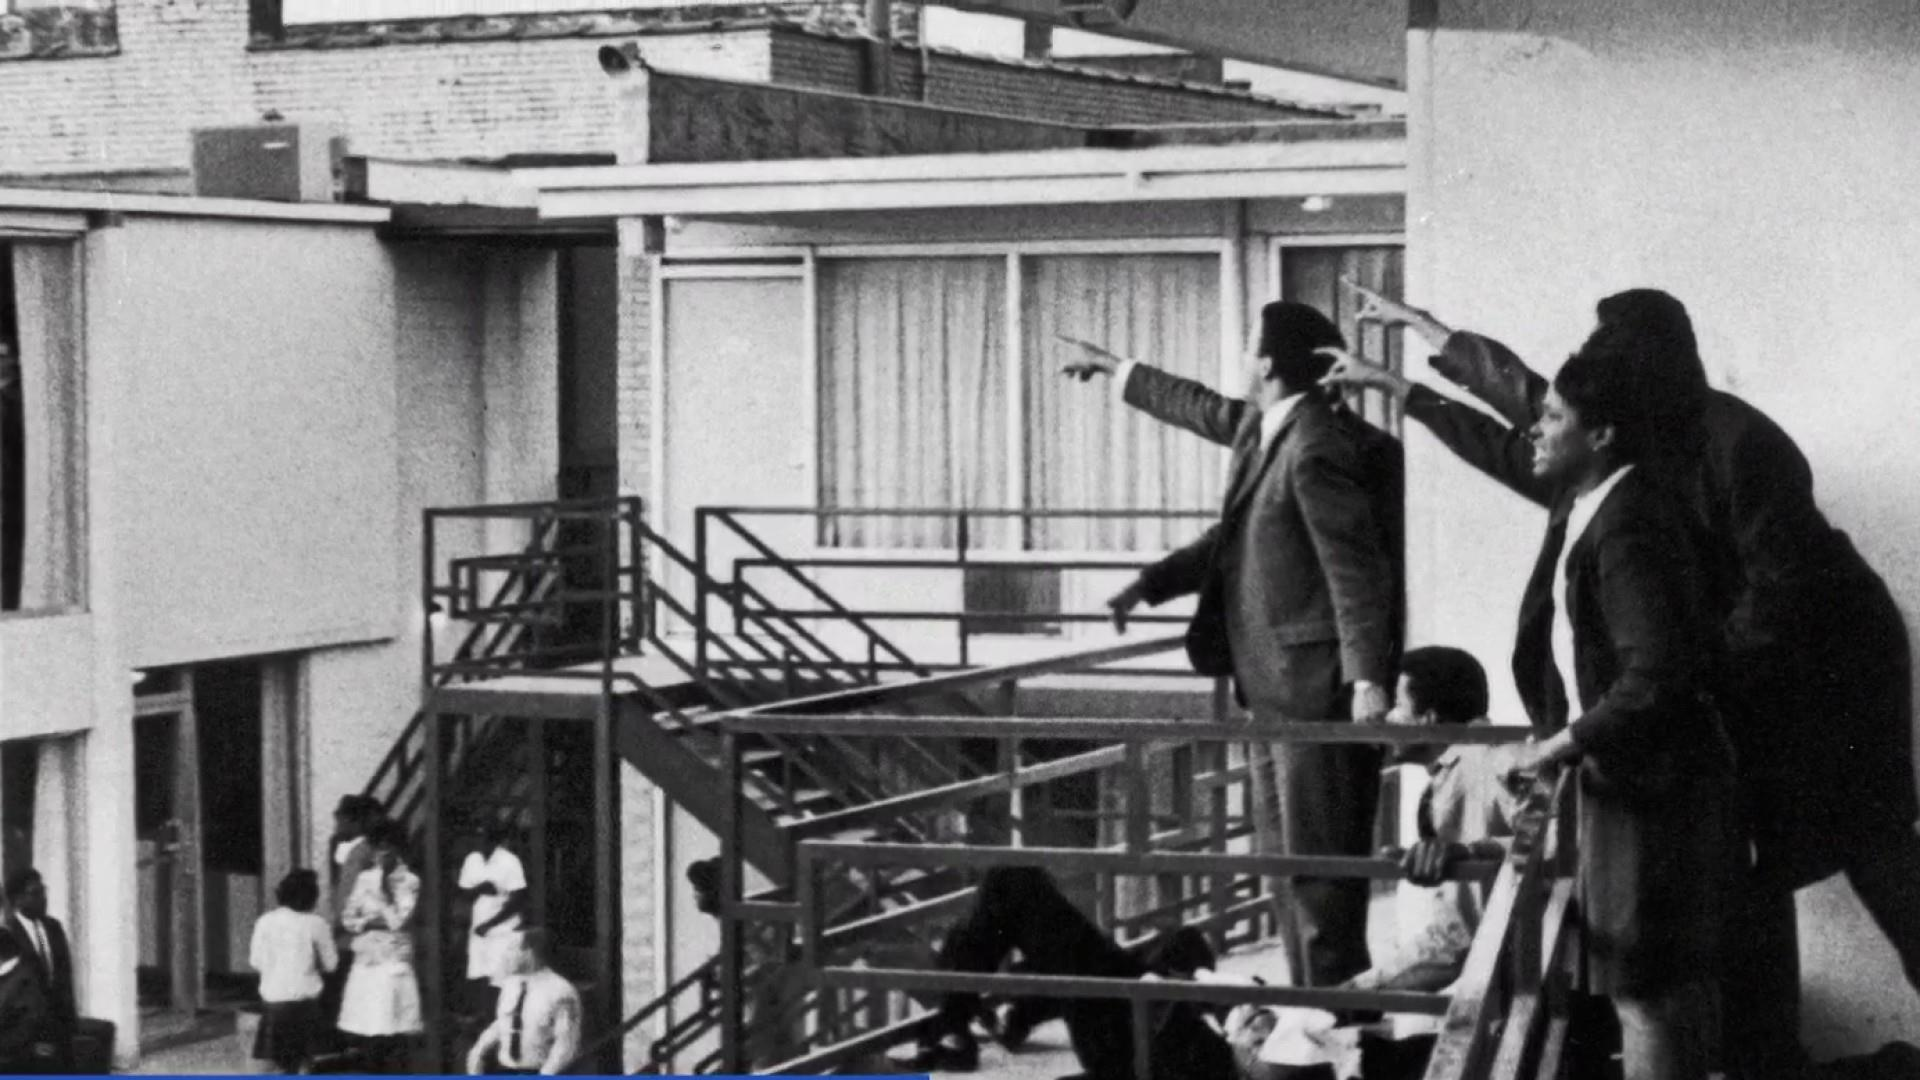 50 years later: Eyewitness opens up about MLK Jr. assassination